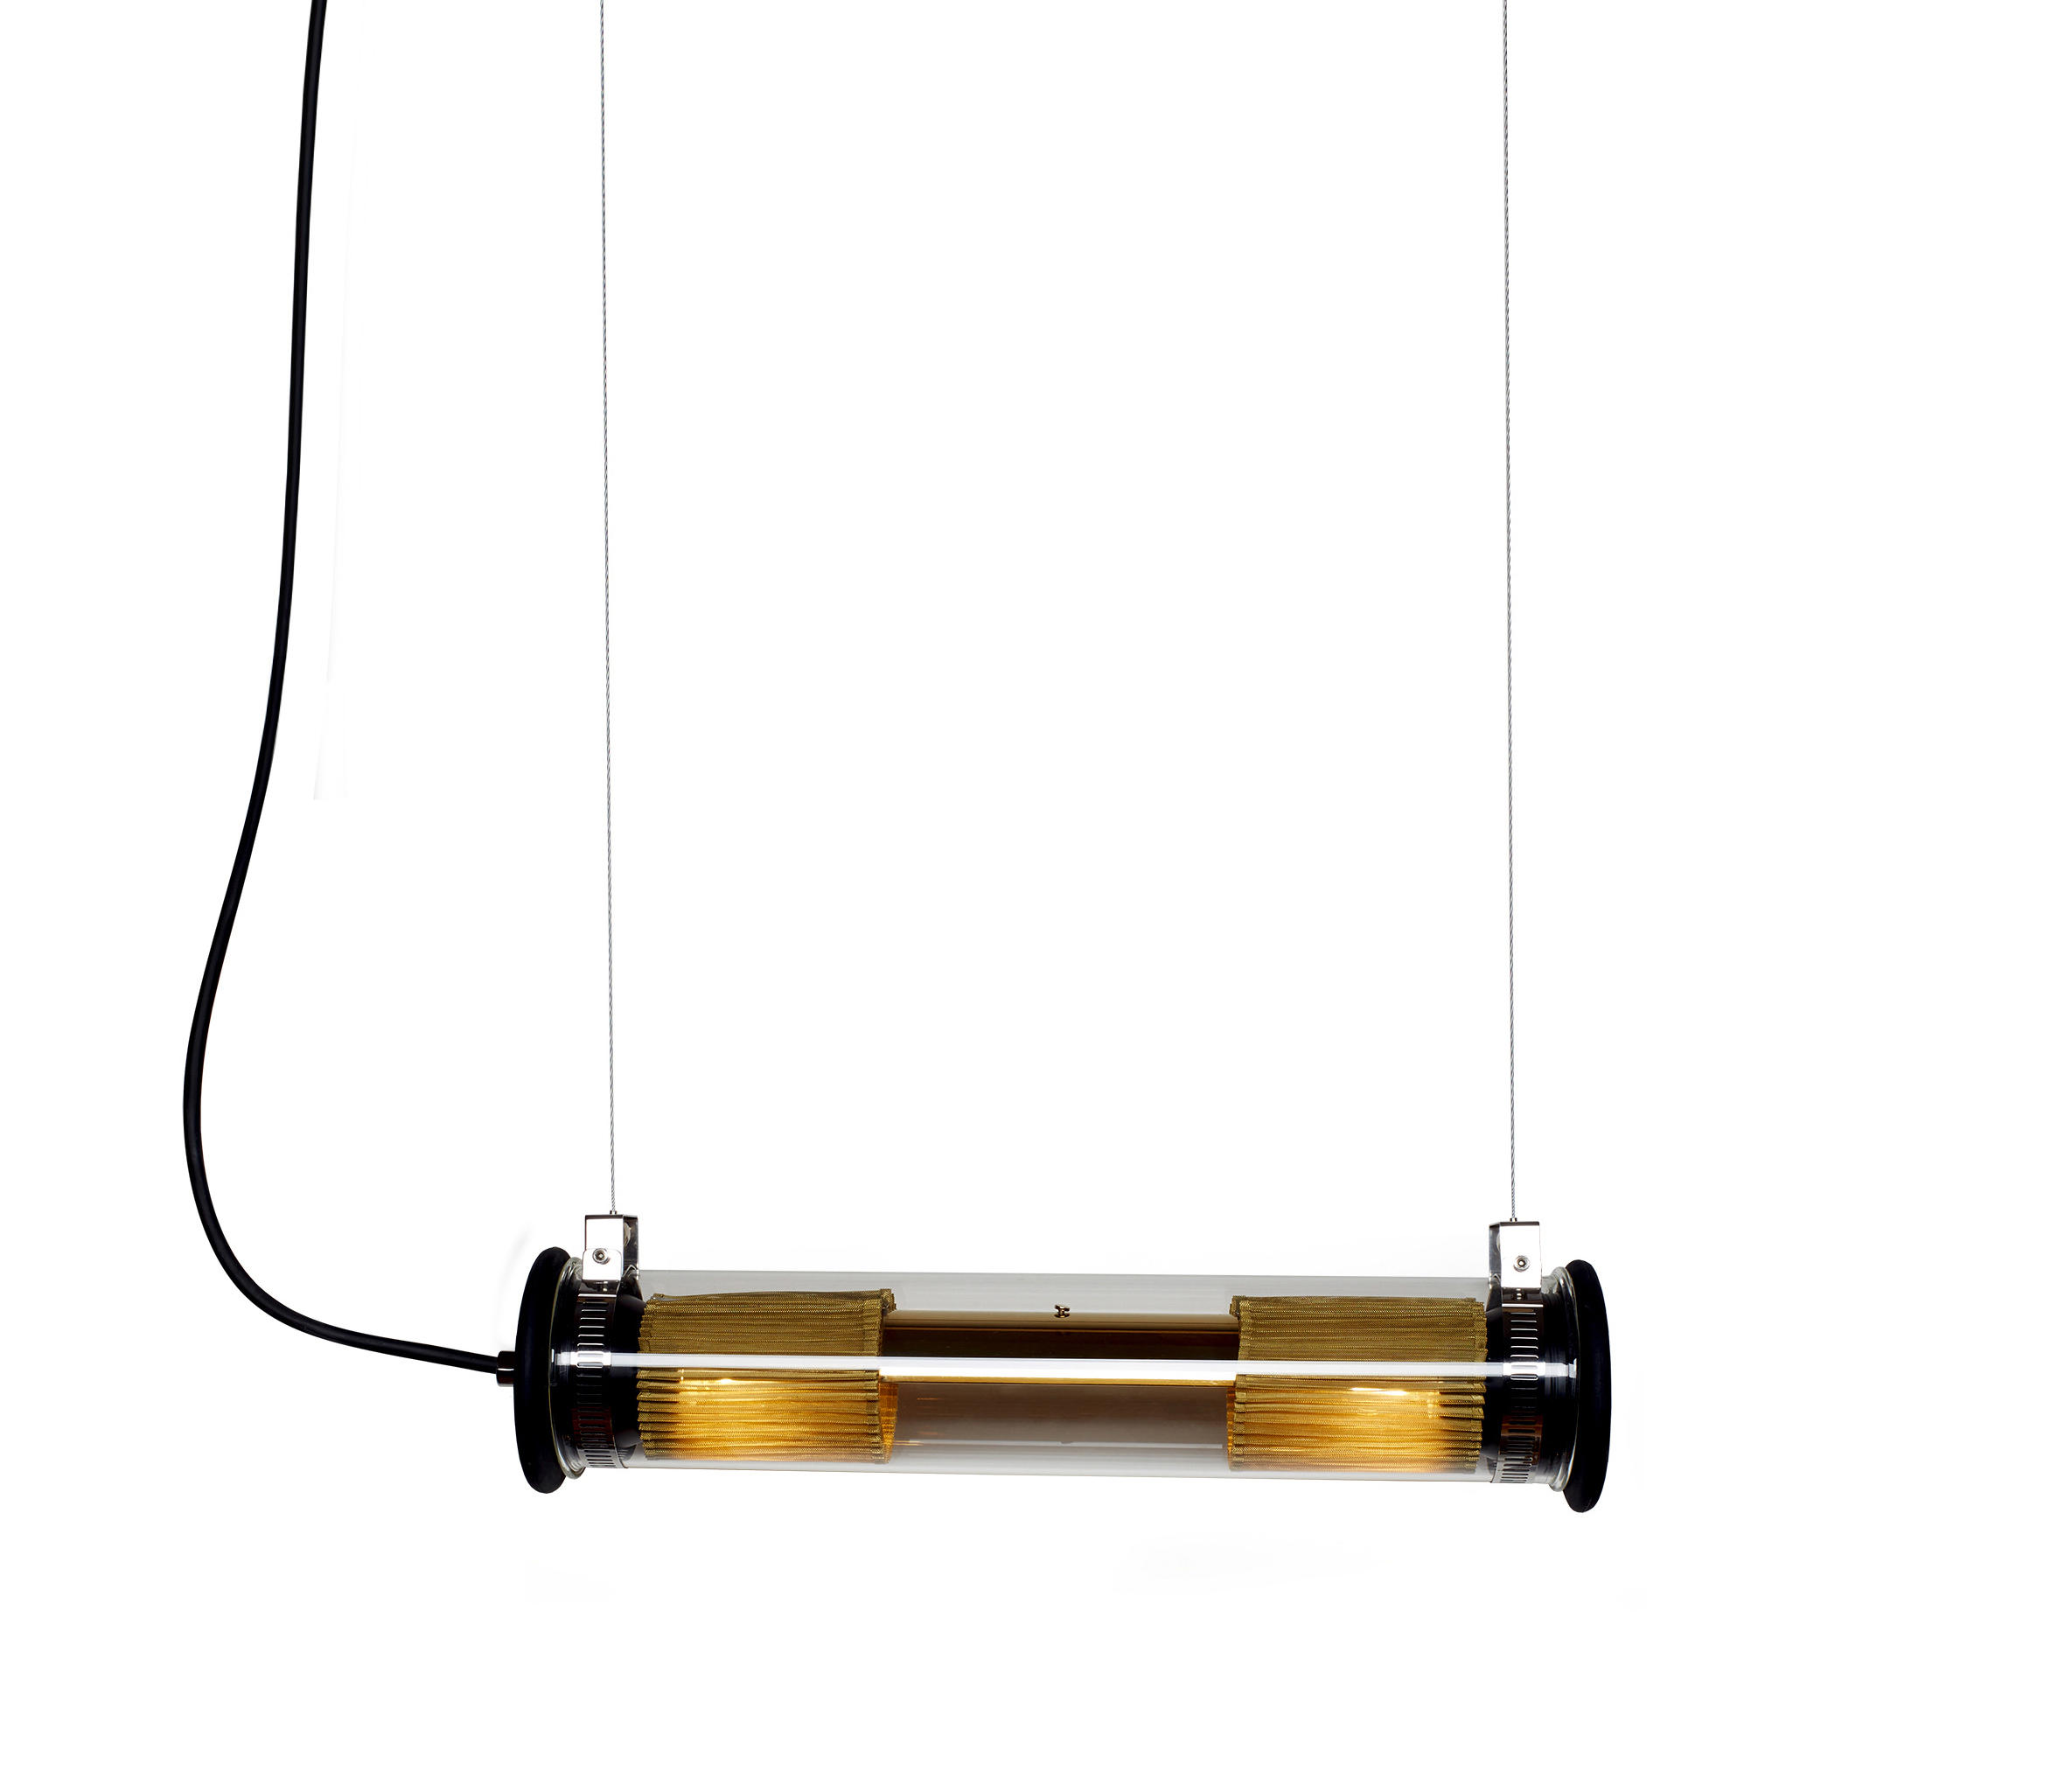 Gold Tube In The Tube 100 500 Gold Suspension General Lighting